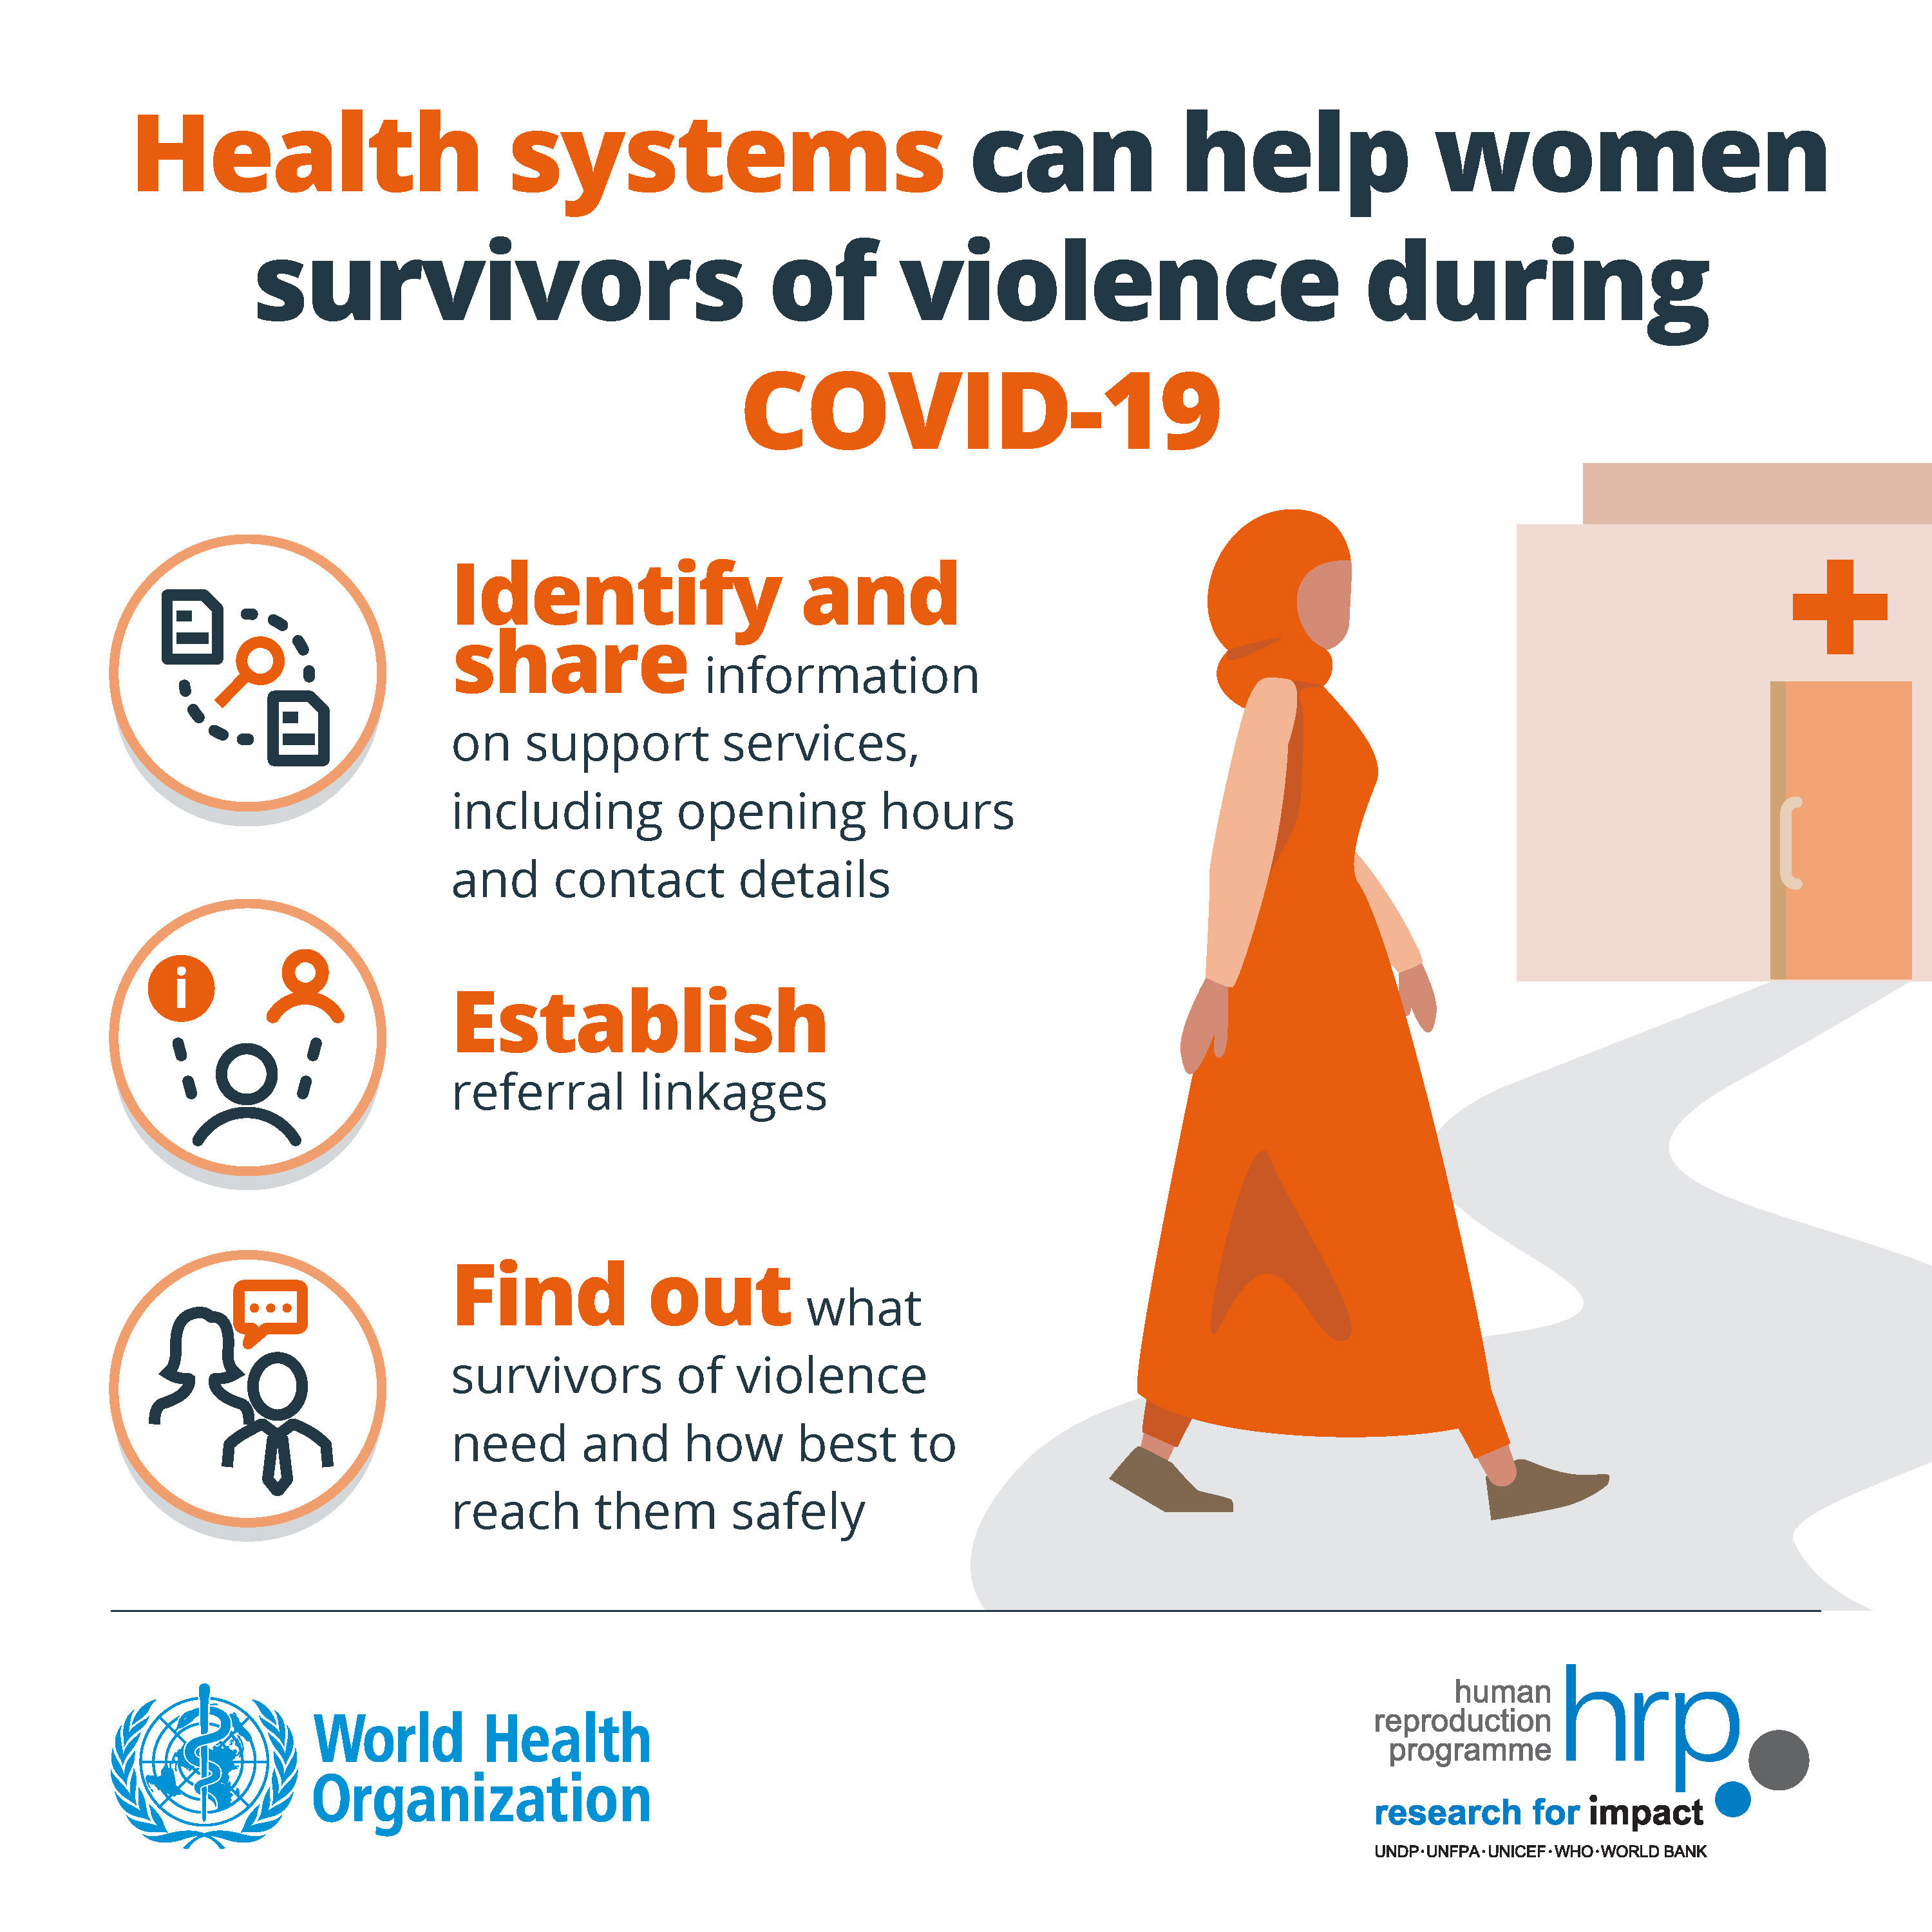 COVID-19 has increased rates of gender-based violence